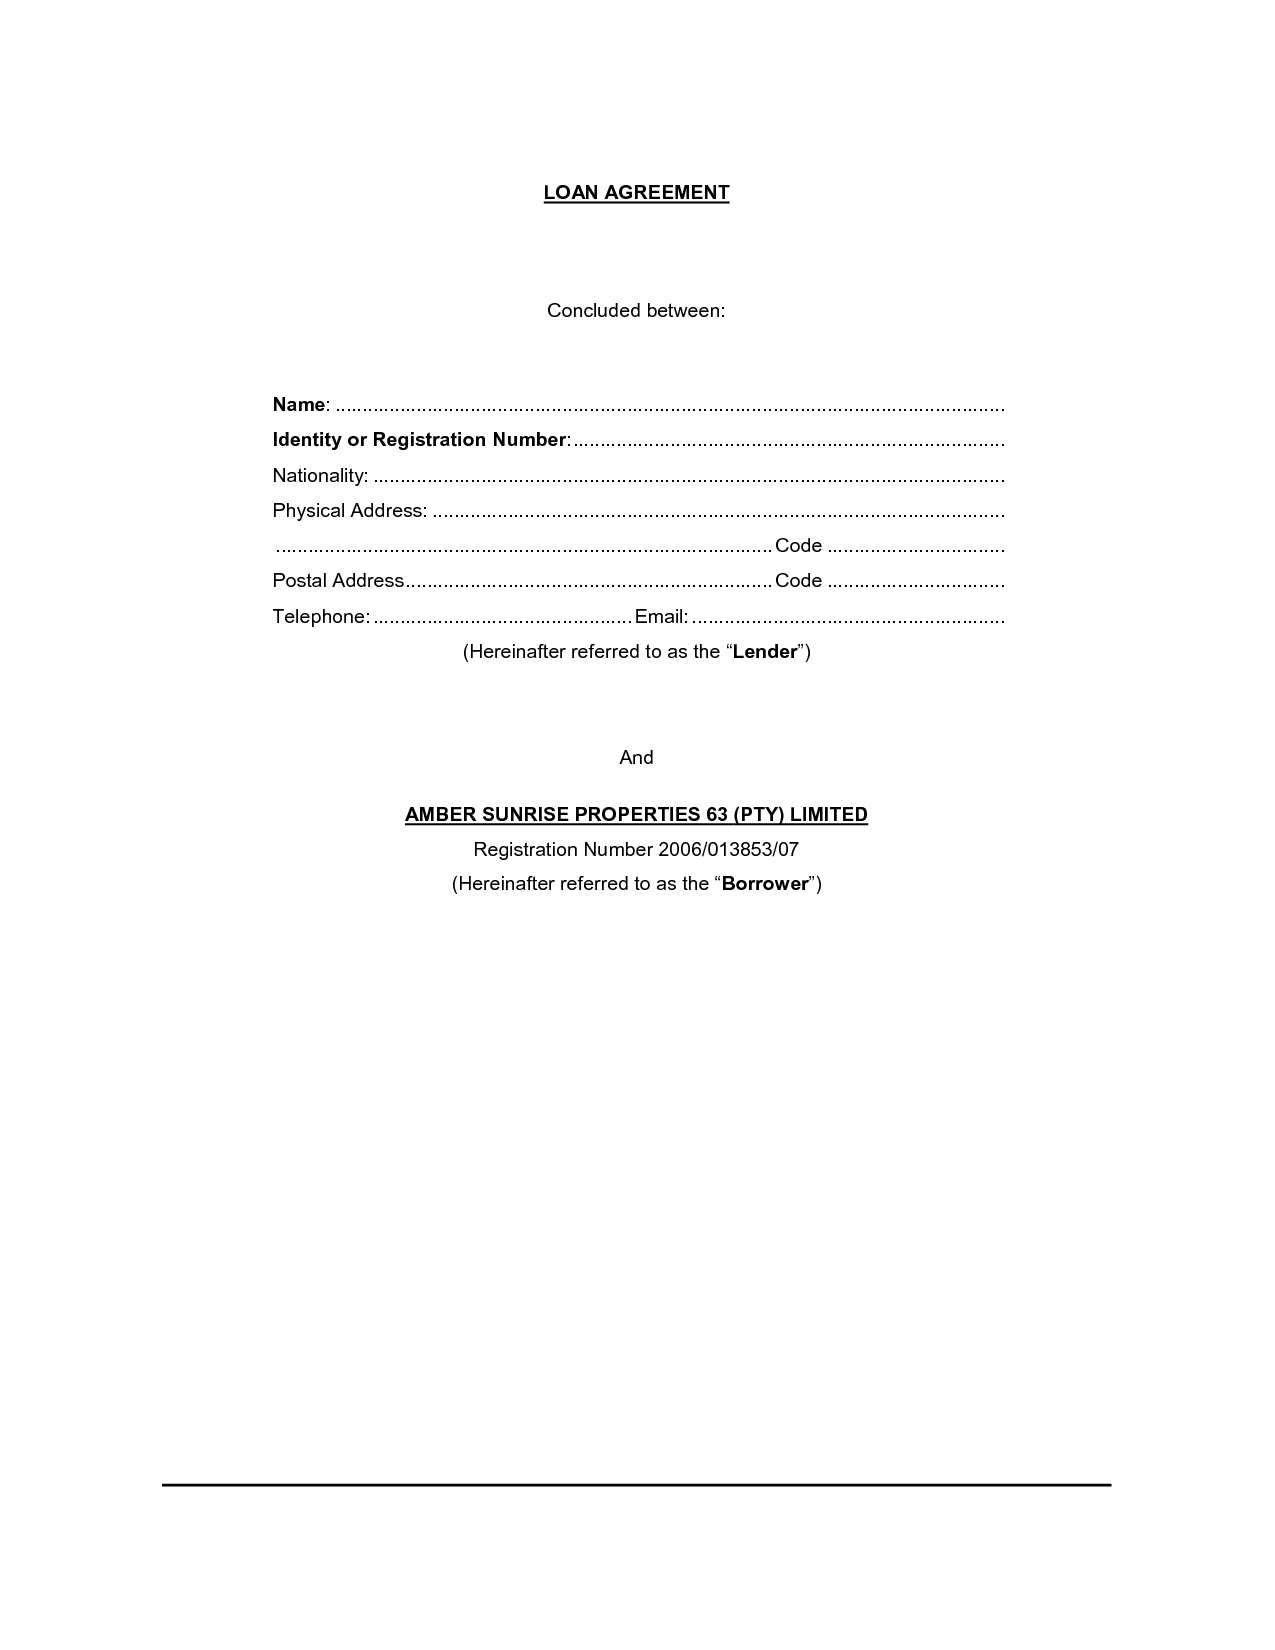 Printable Loan Agreement Form Stunning Angel Fdrawdy Angelfdrawdy On Pinterest